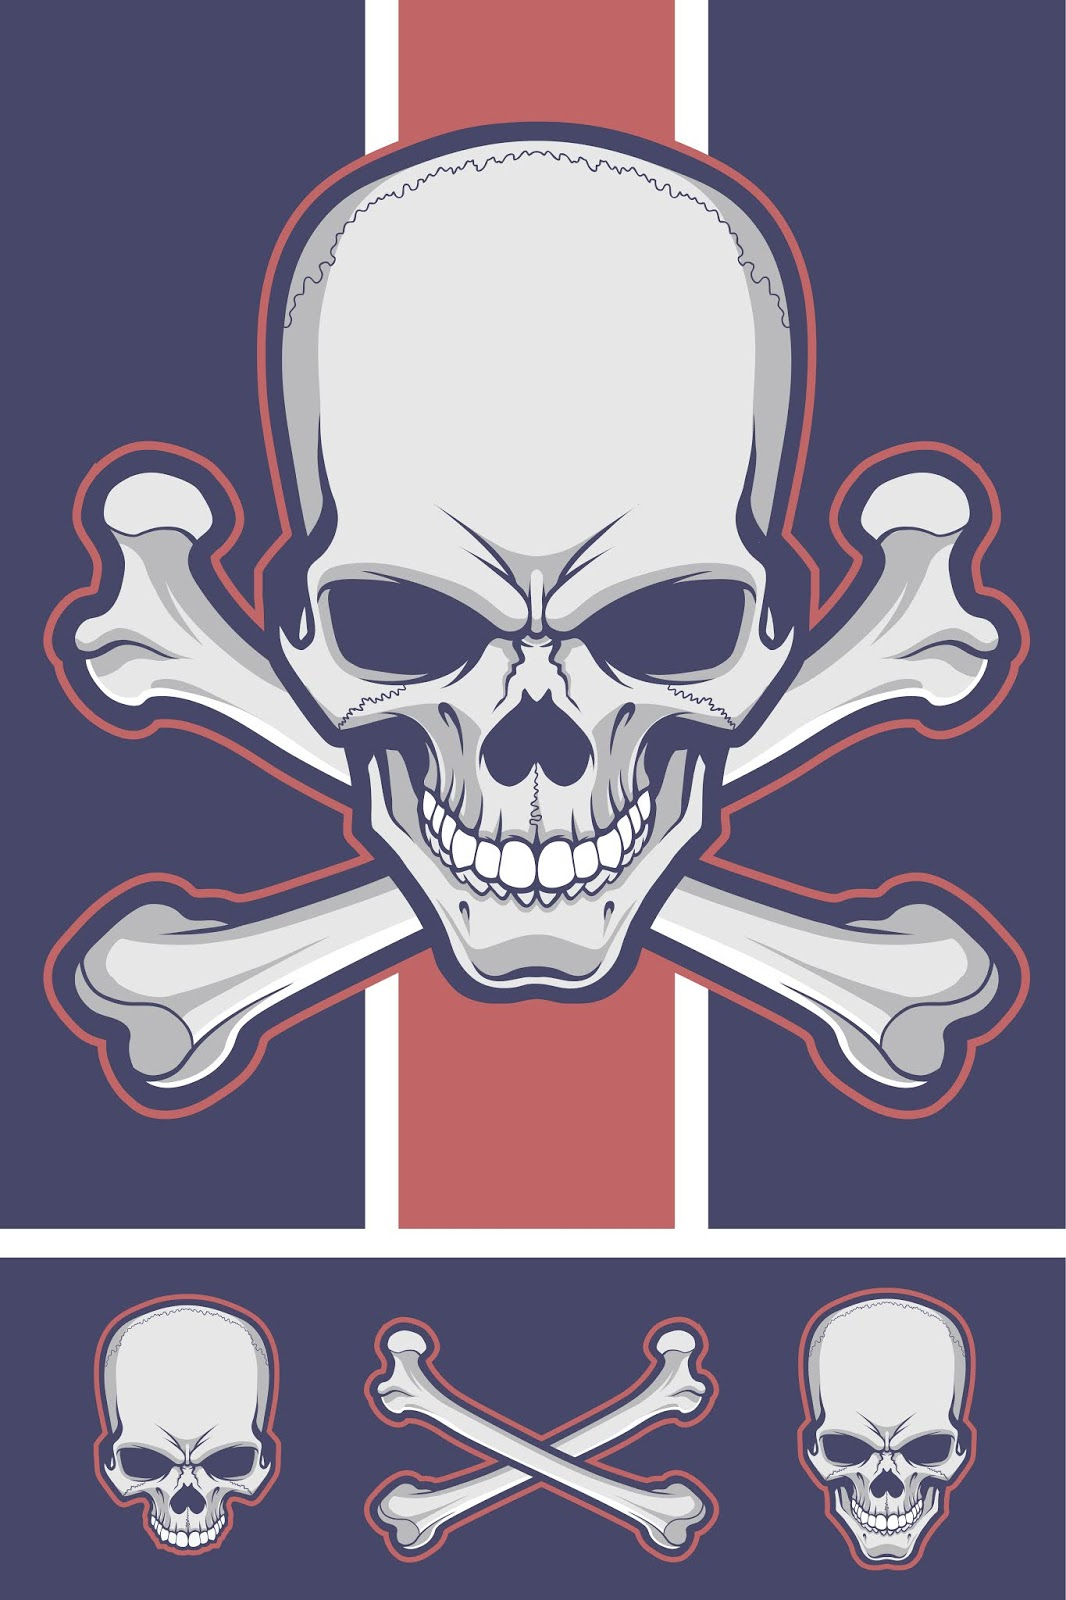 Skull With Crossbones Free Download Vector CDR, AI, EPS and PNG Formats